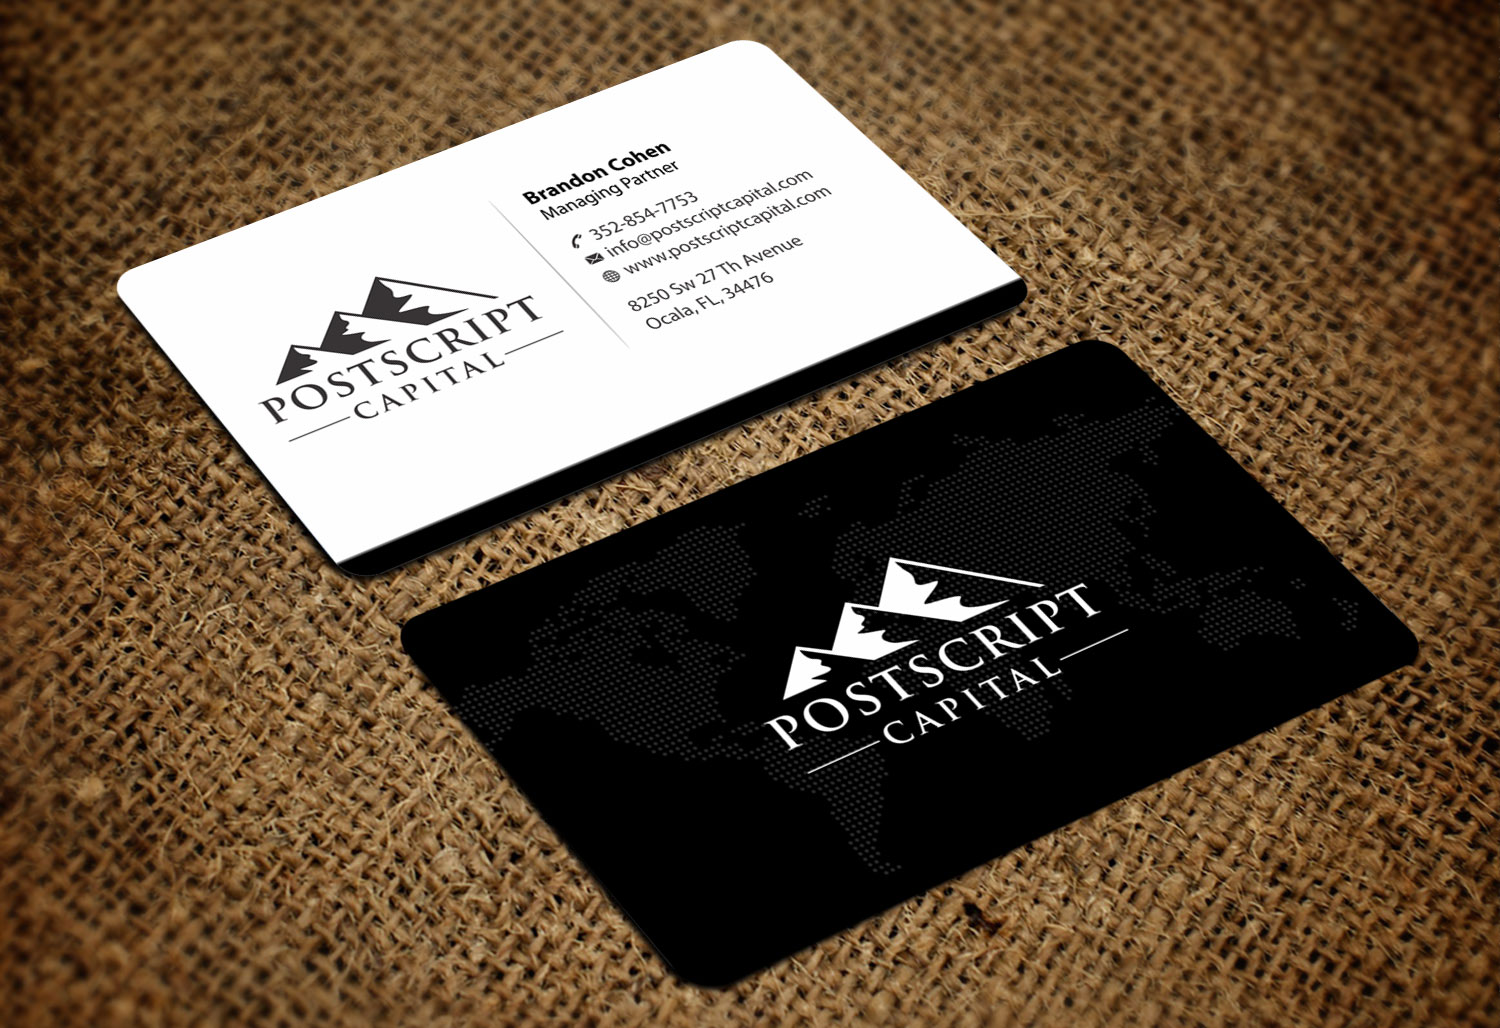 Masculine conservative business card design for carolyn cohen by business card design by madhuraminfotech for business card for managing partner investment fund design reheart Image collections